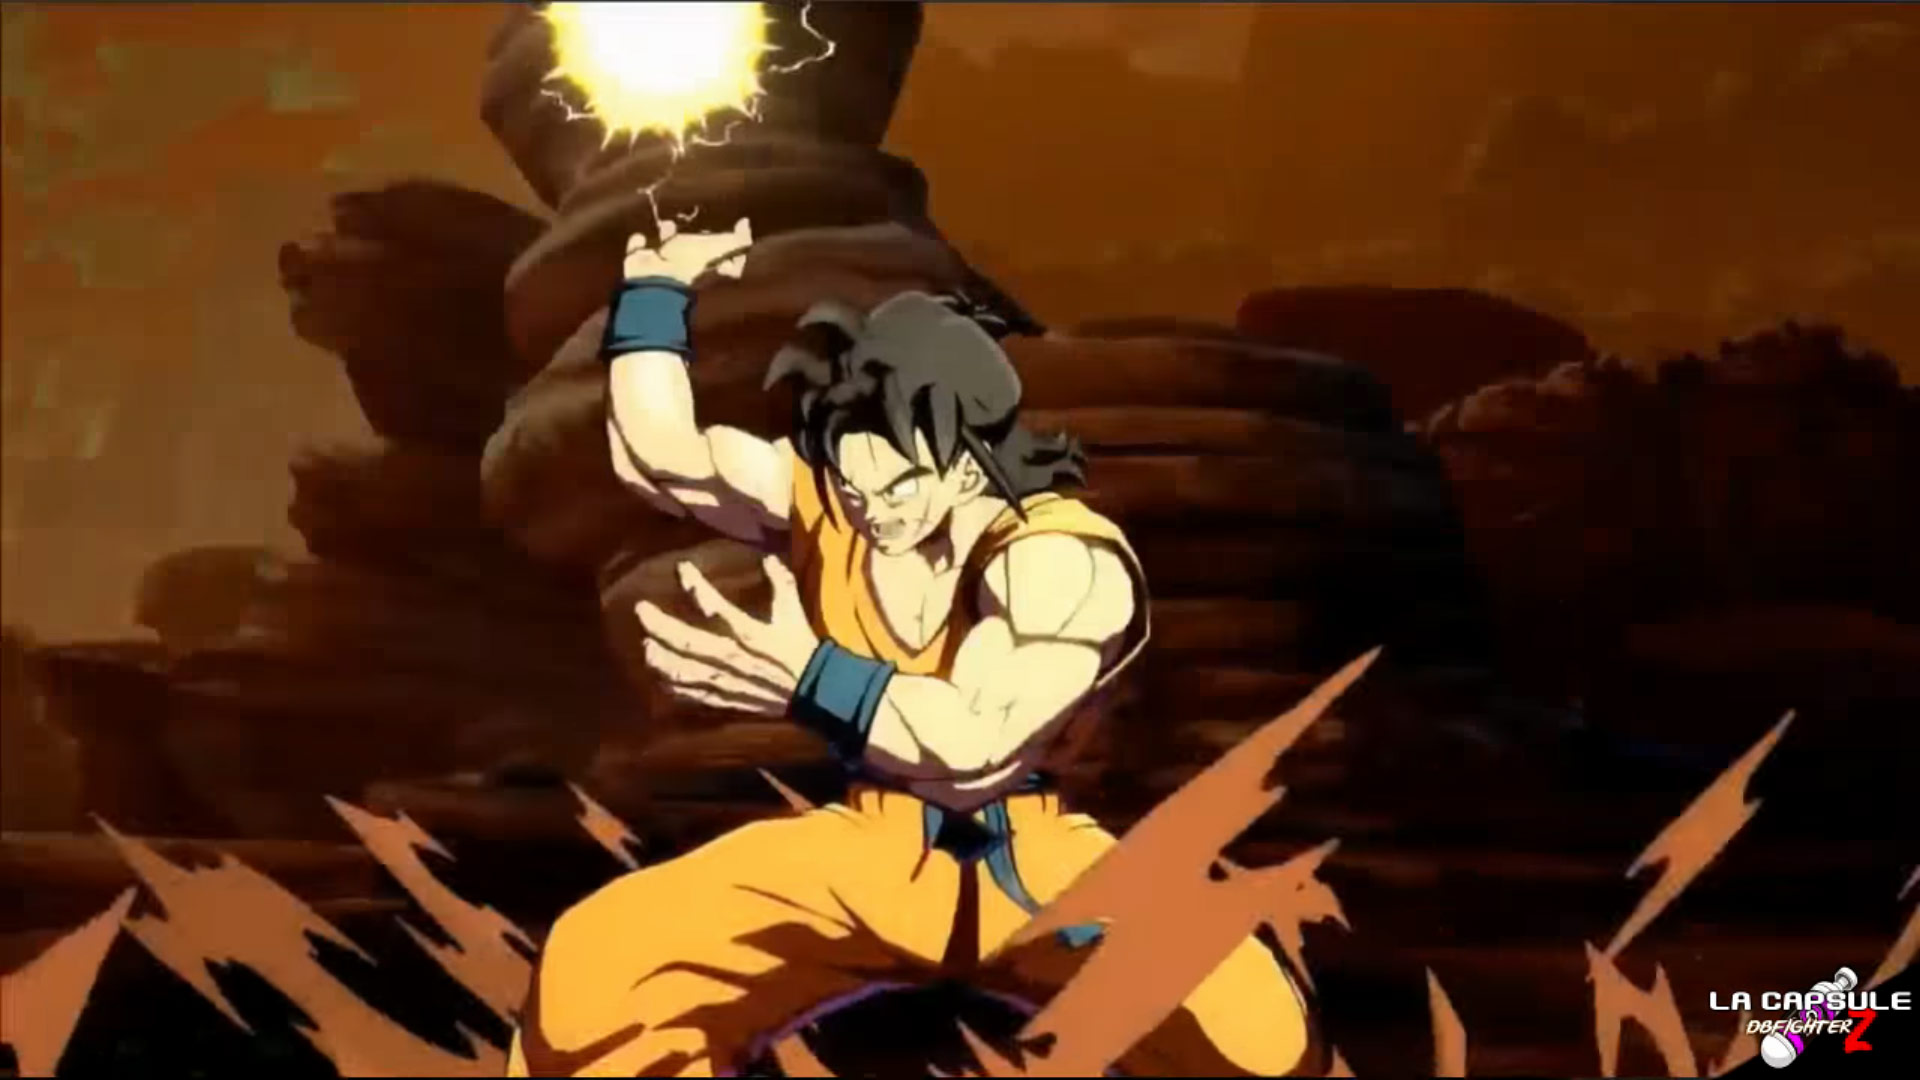 Yamcha and Tenshinhan Gameplay Trailer Gallery 3 out of 6 image gallery